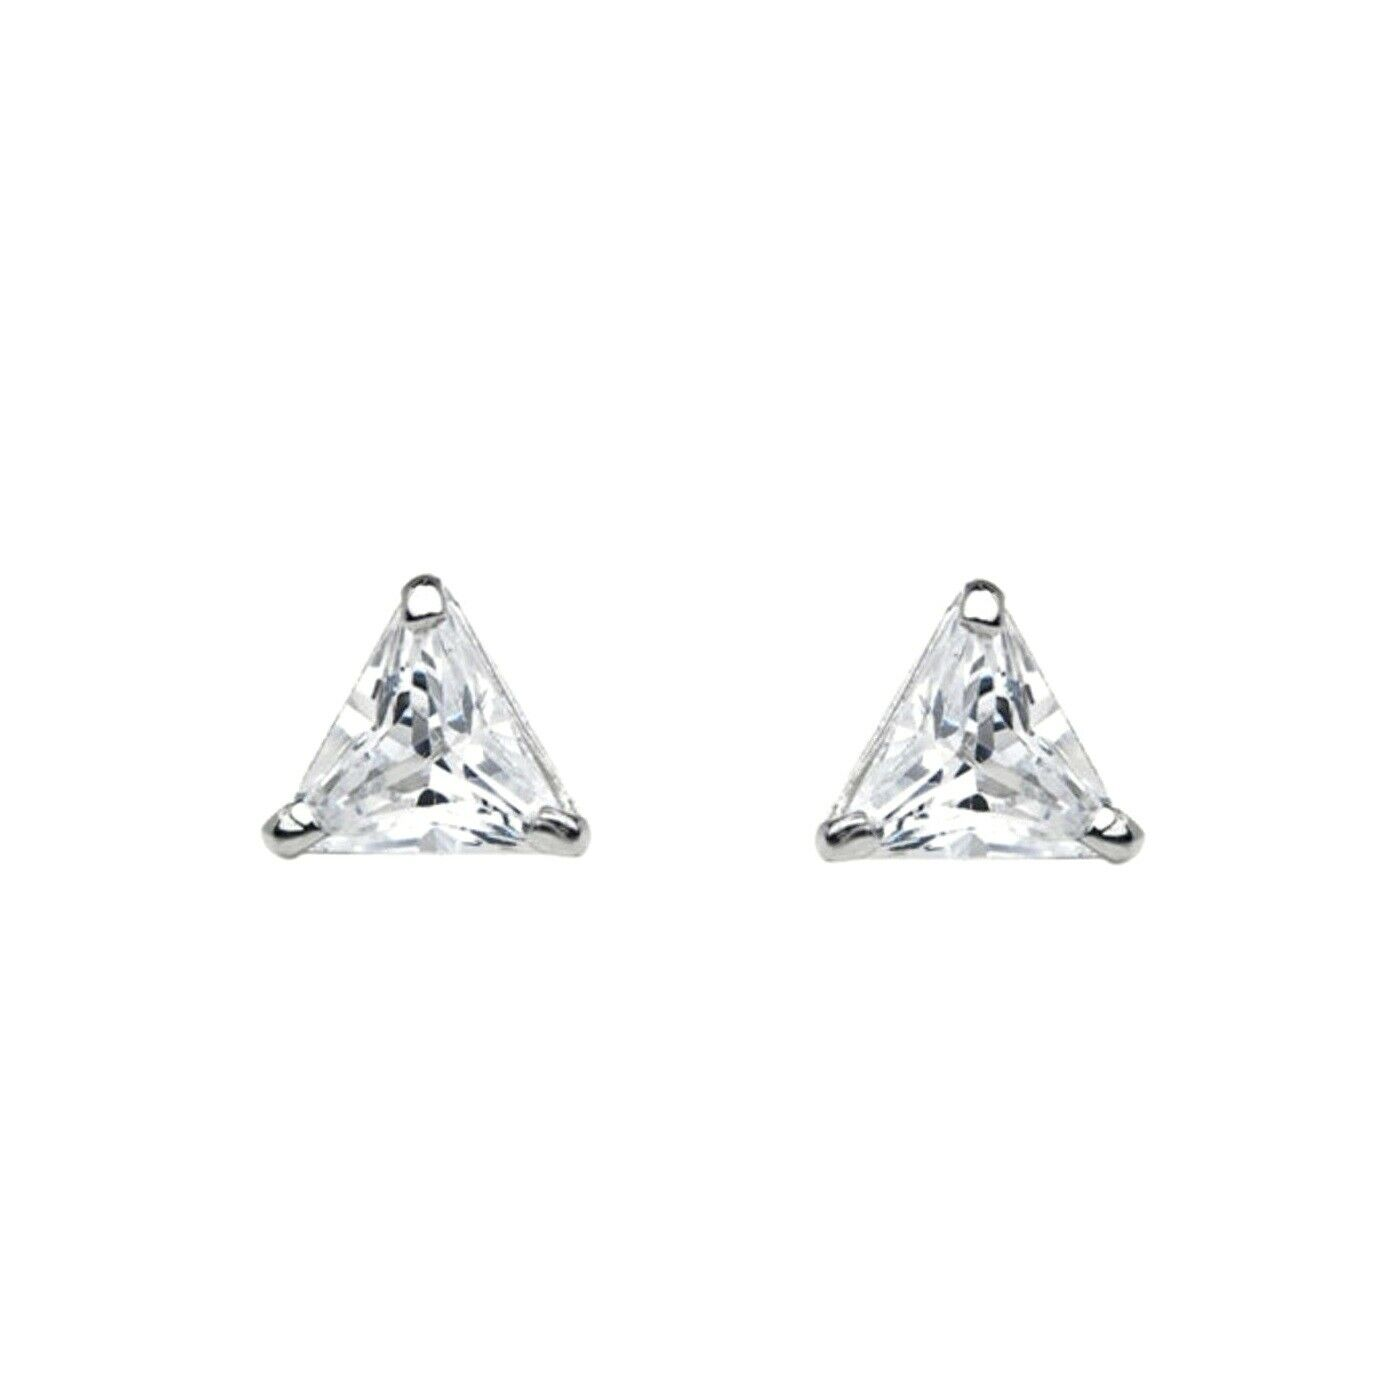 1 Ct Triangle Cut Created Diamond Stud Earrings 14k Solid White Gold Of 5only Available See More